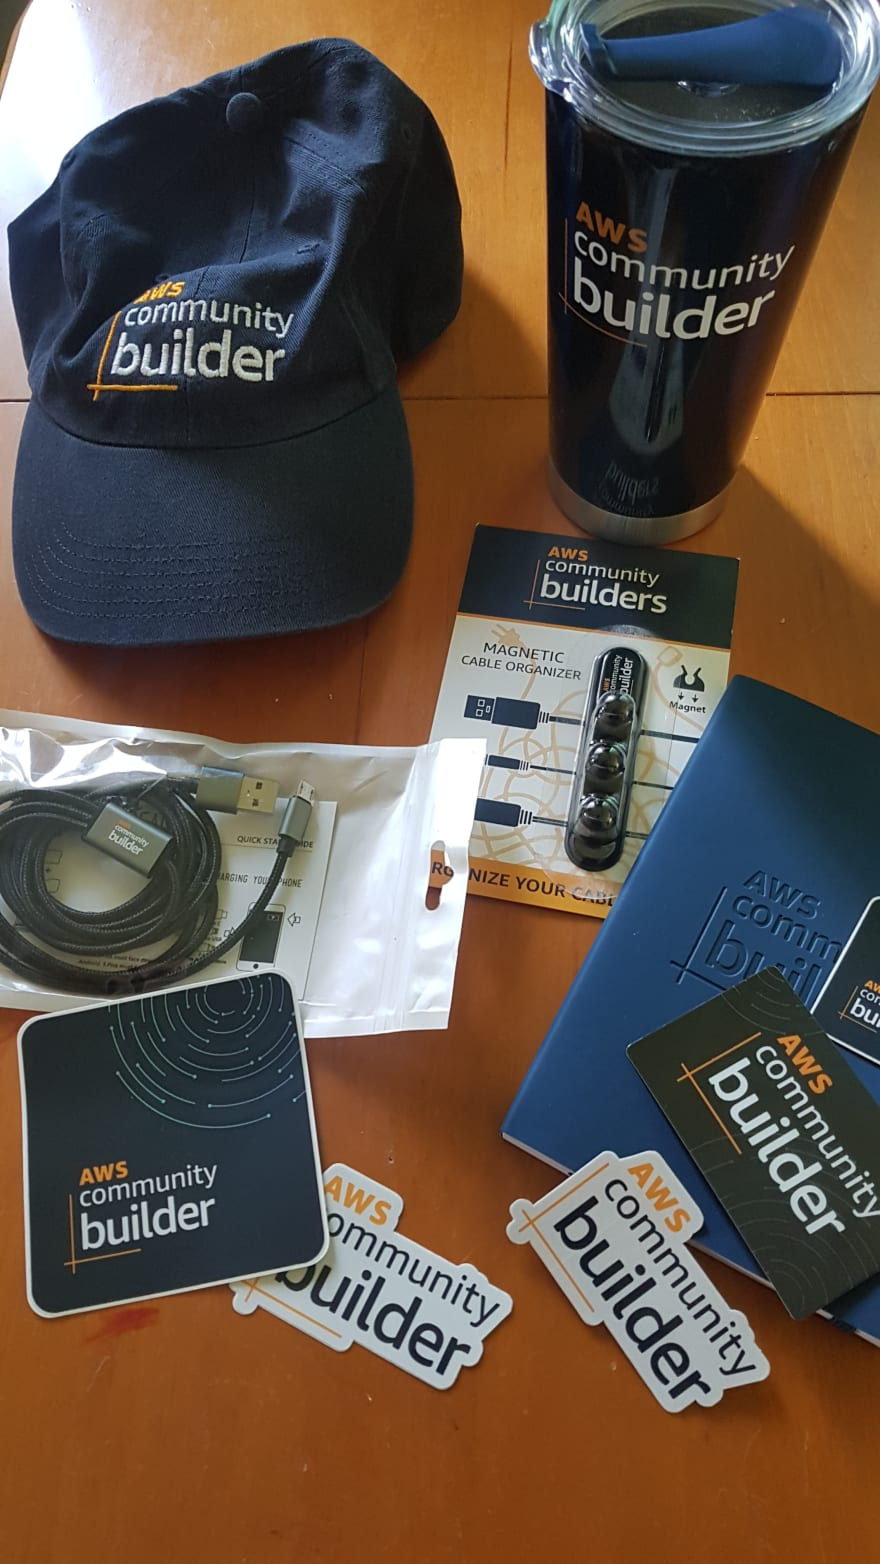 Swags for Community Builders